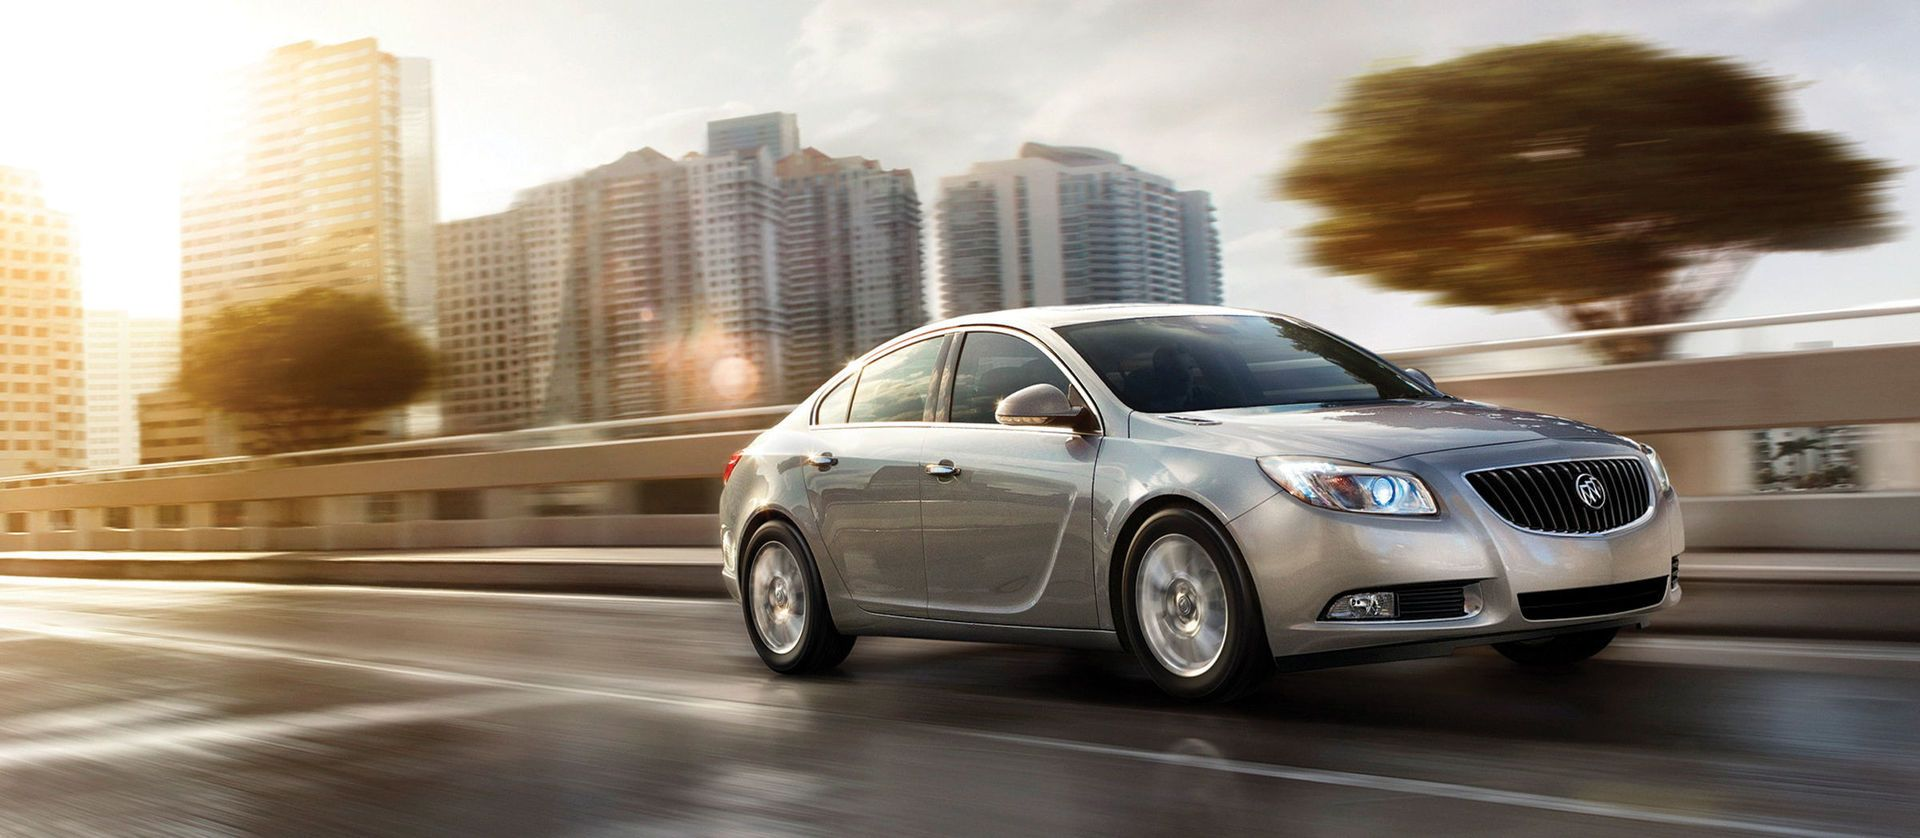 Clean Buick Lacrosse Car